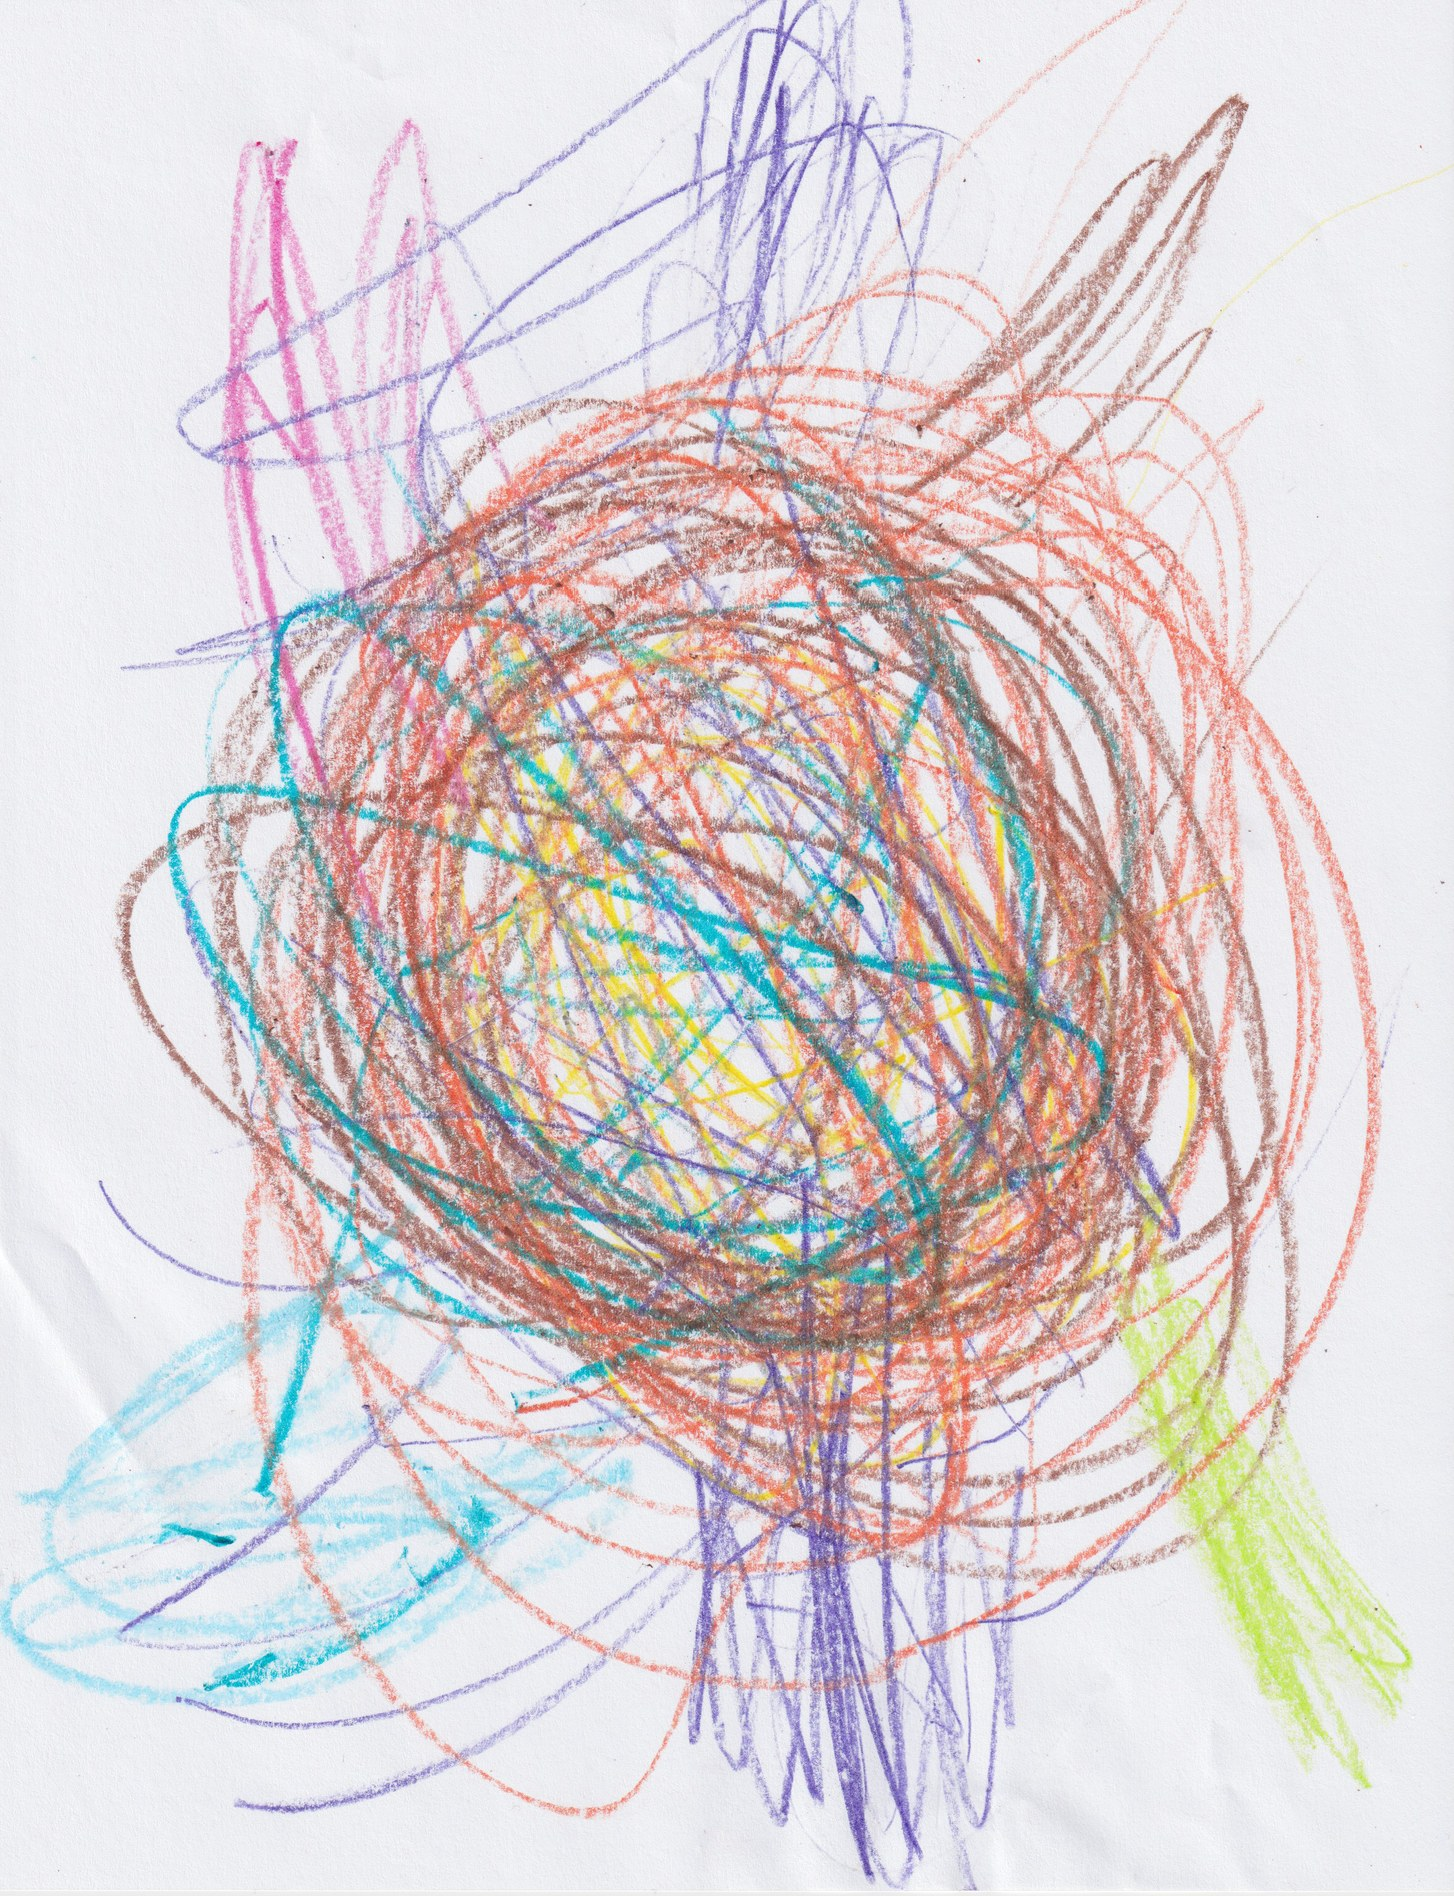 New Yorker Magazine's Andy Borowitz spoofed that a child's scribbled drawing accidentally was included in the Senate GOP tax-cut legislation. With time to read the actual 479-page bill that the Senate passed, the buried provisions might be more disturbing than a scribbled drawing.]